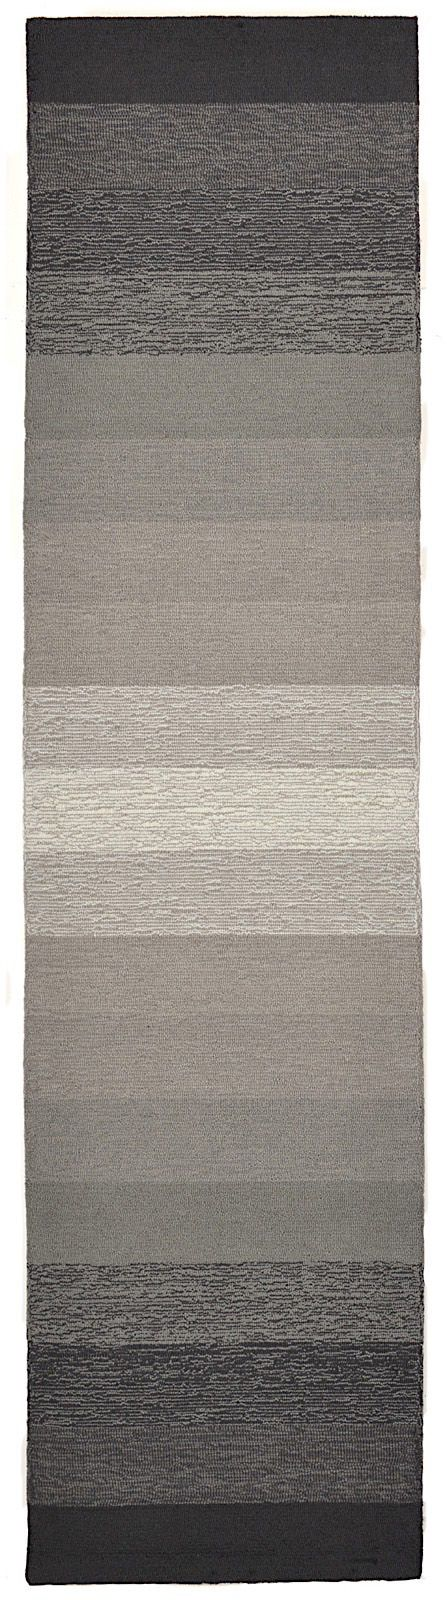 trans ocean ravella solid/striped area rug collection